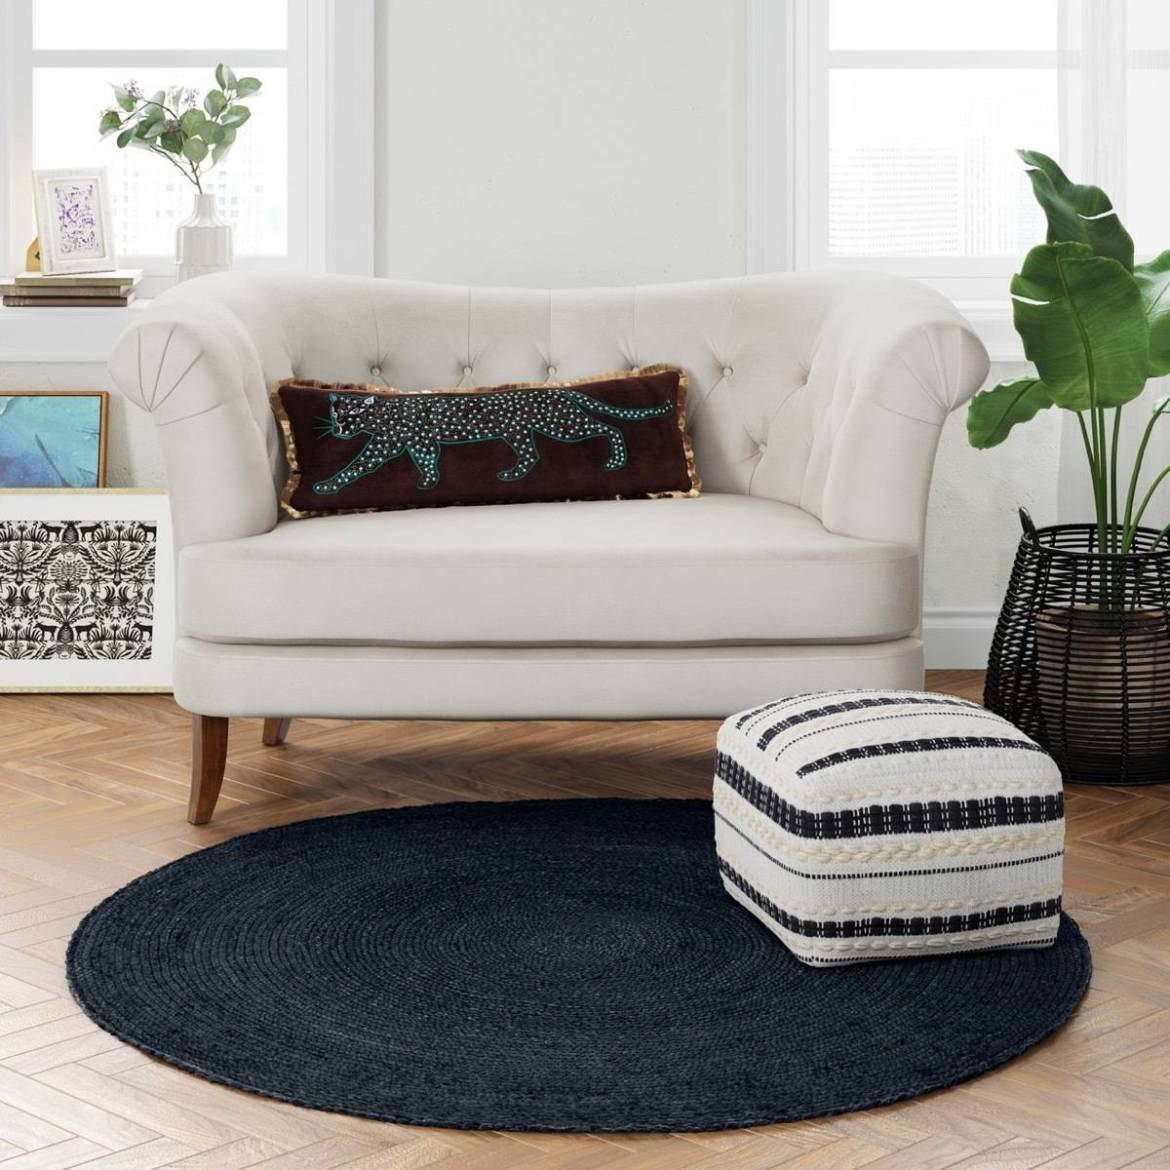 10 affordable furniture and home decor pieces for under $100 - Braided jute rug from Target